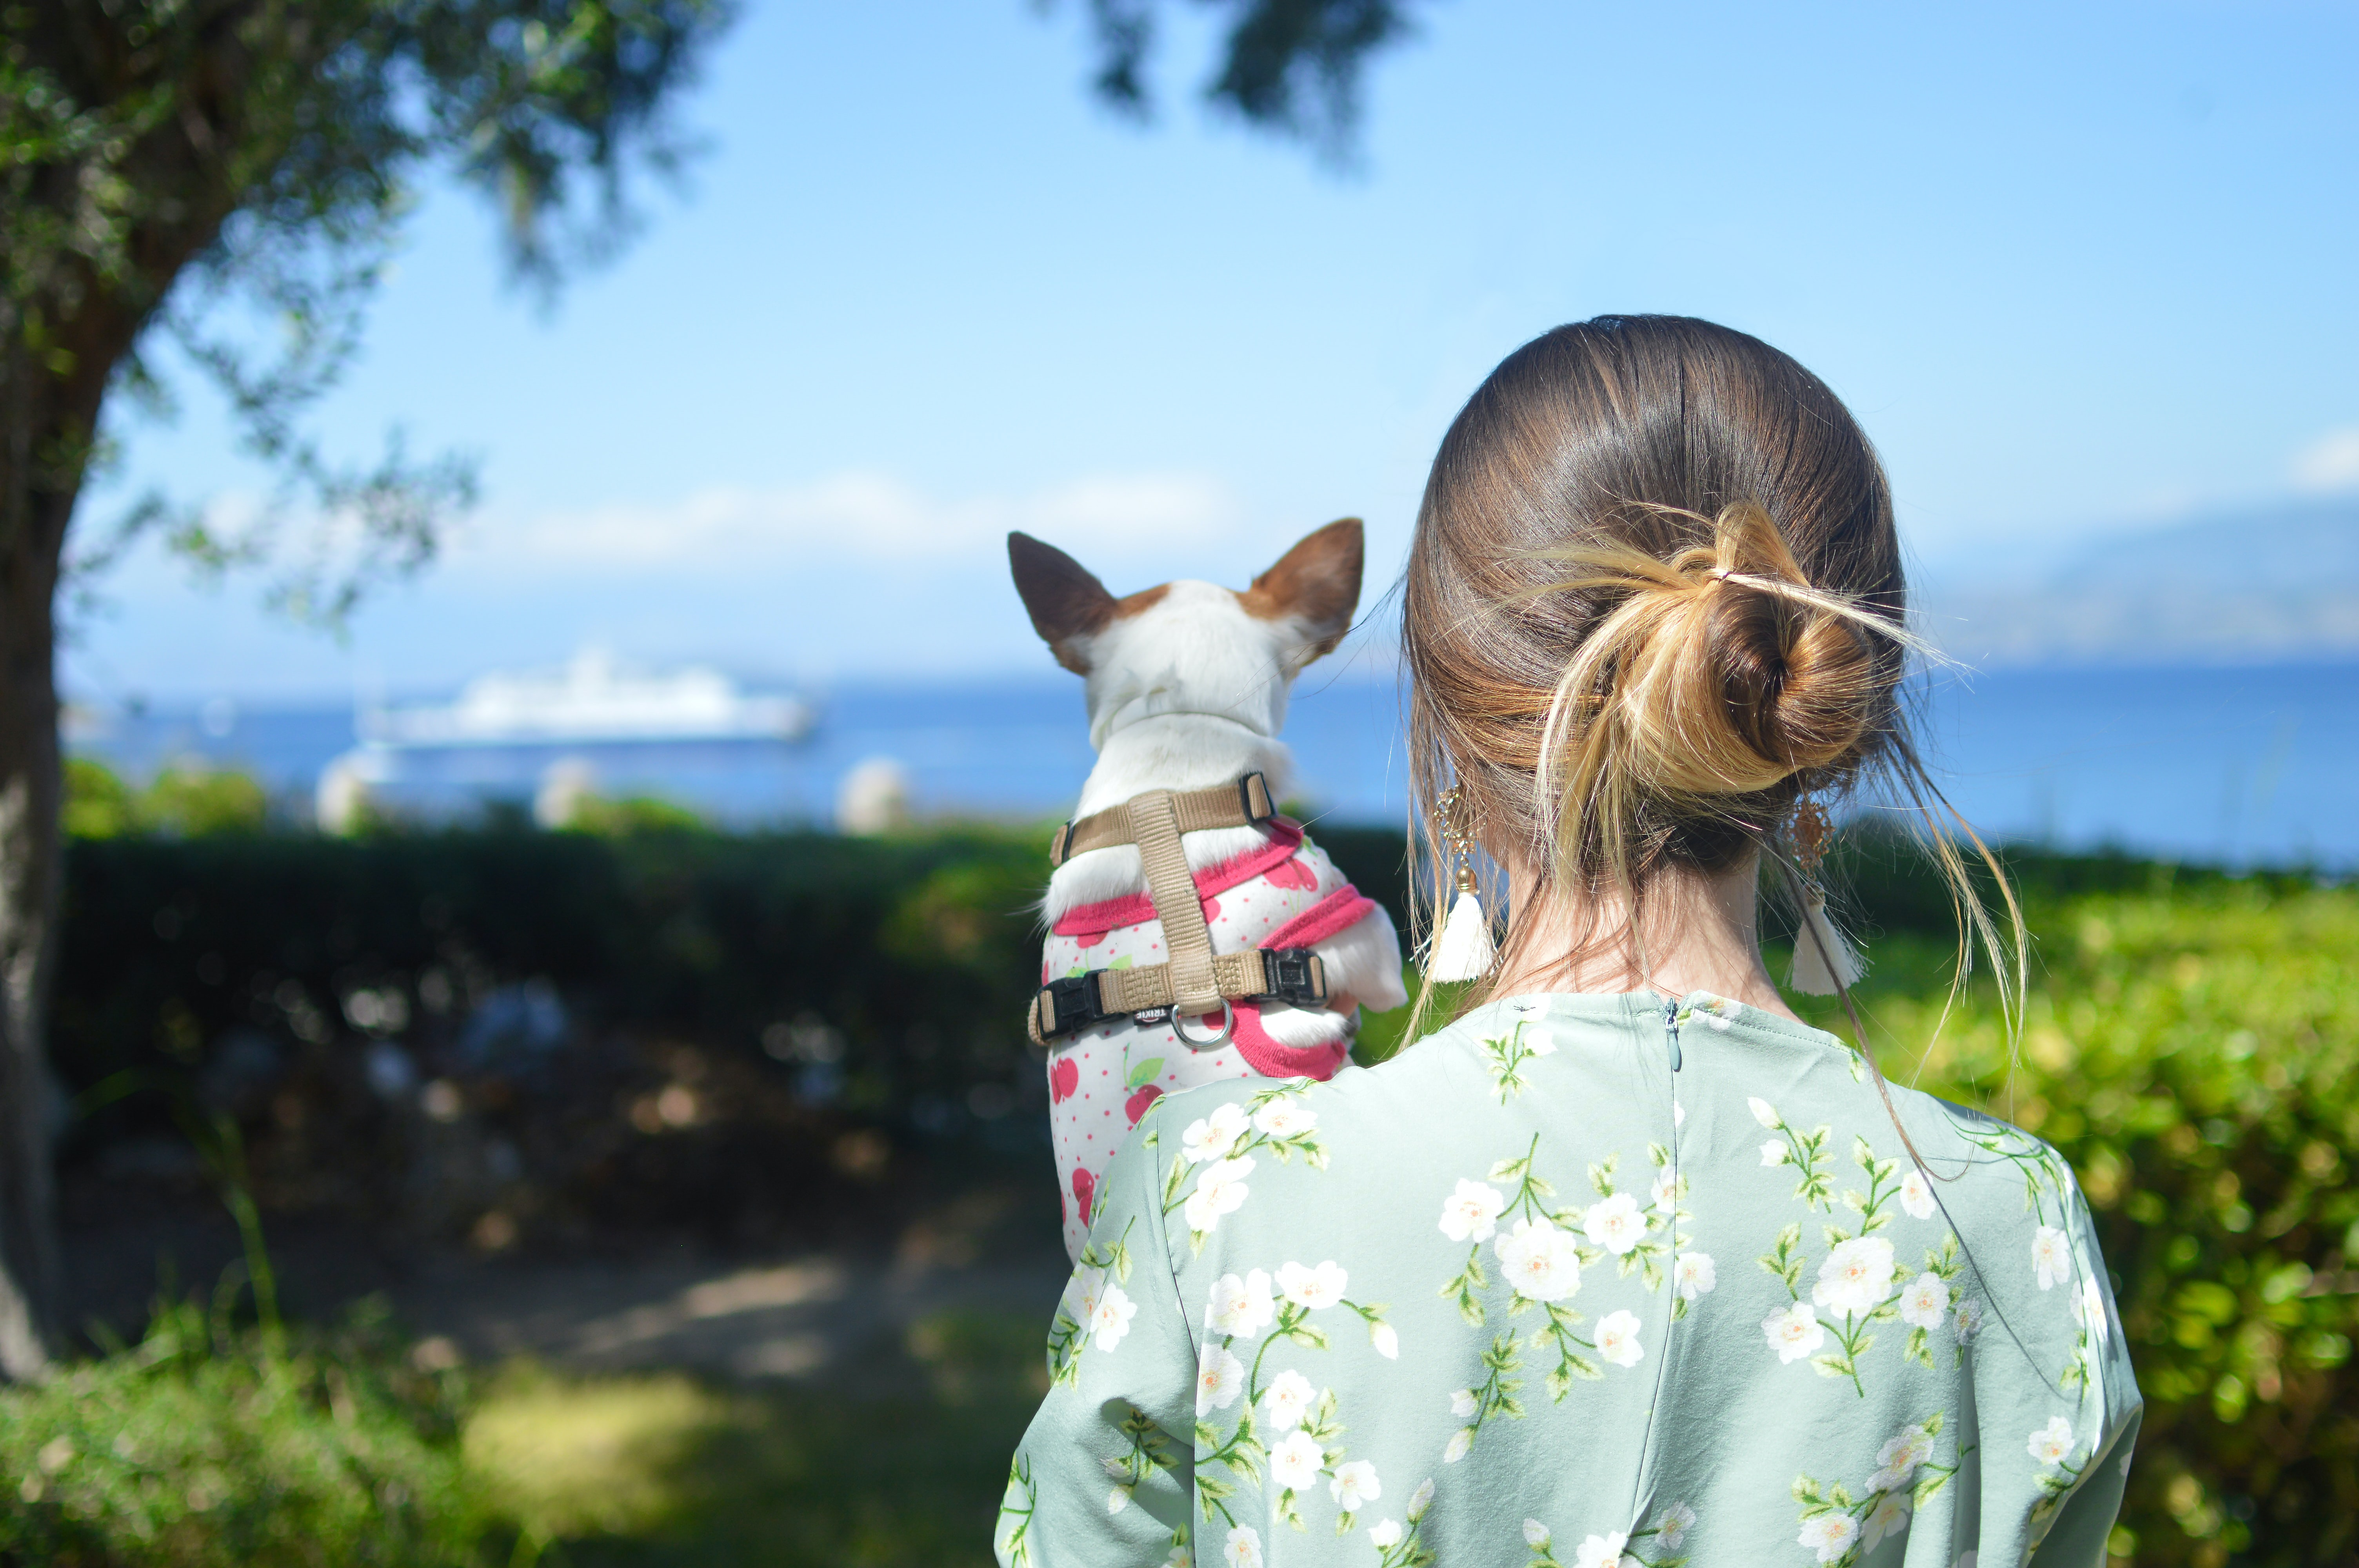 girl carrying dog outdoor during daytime